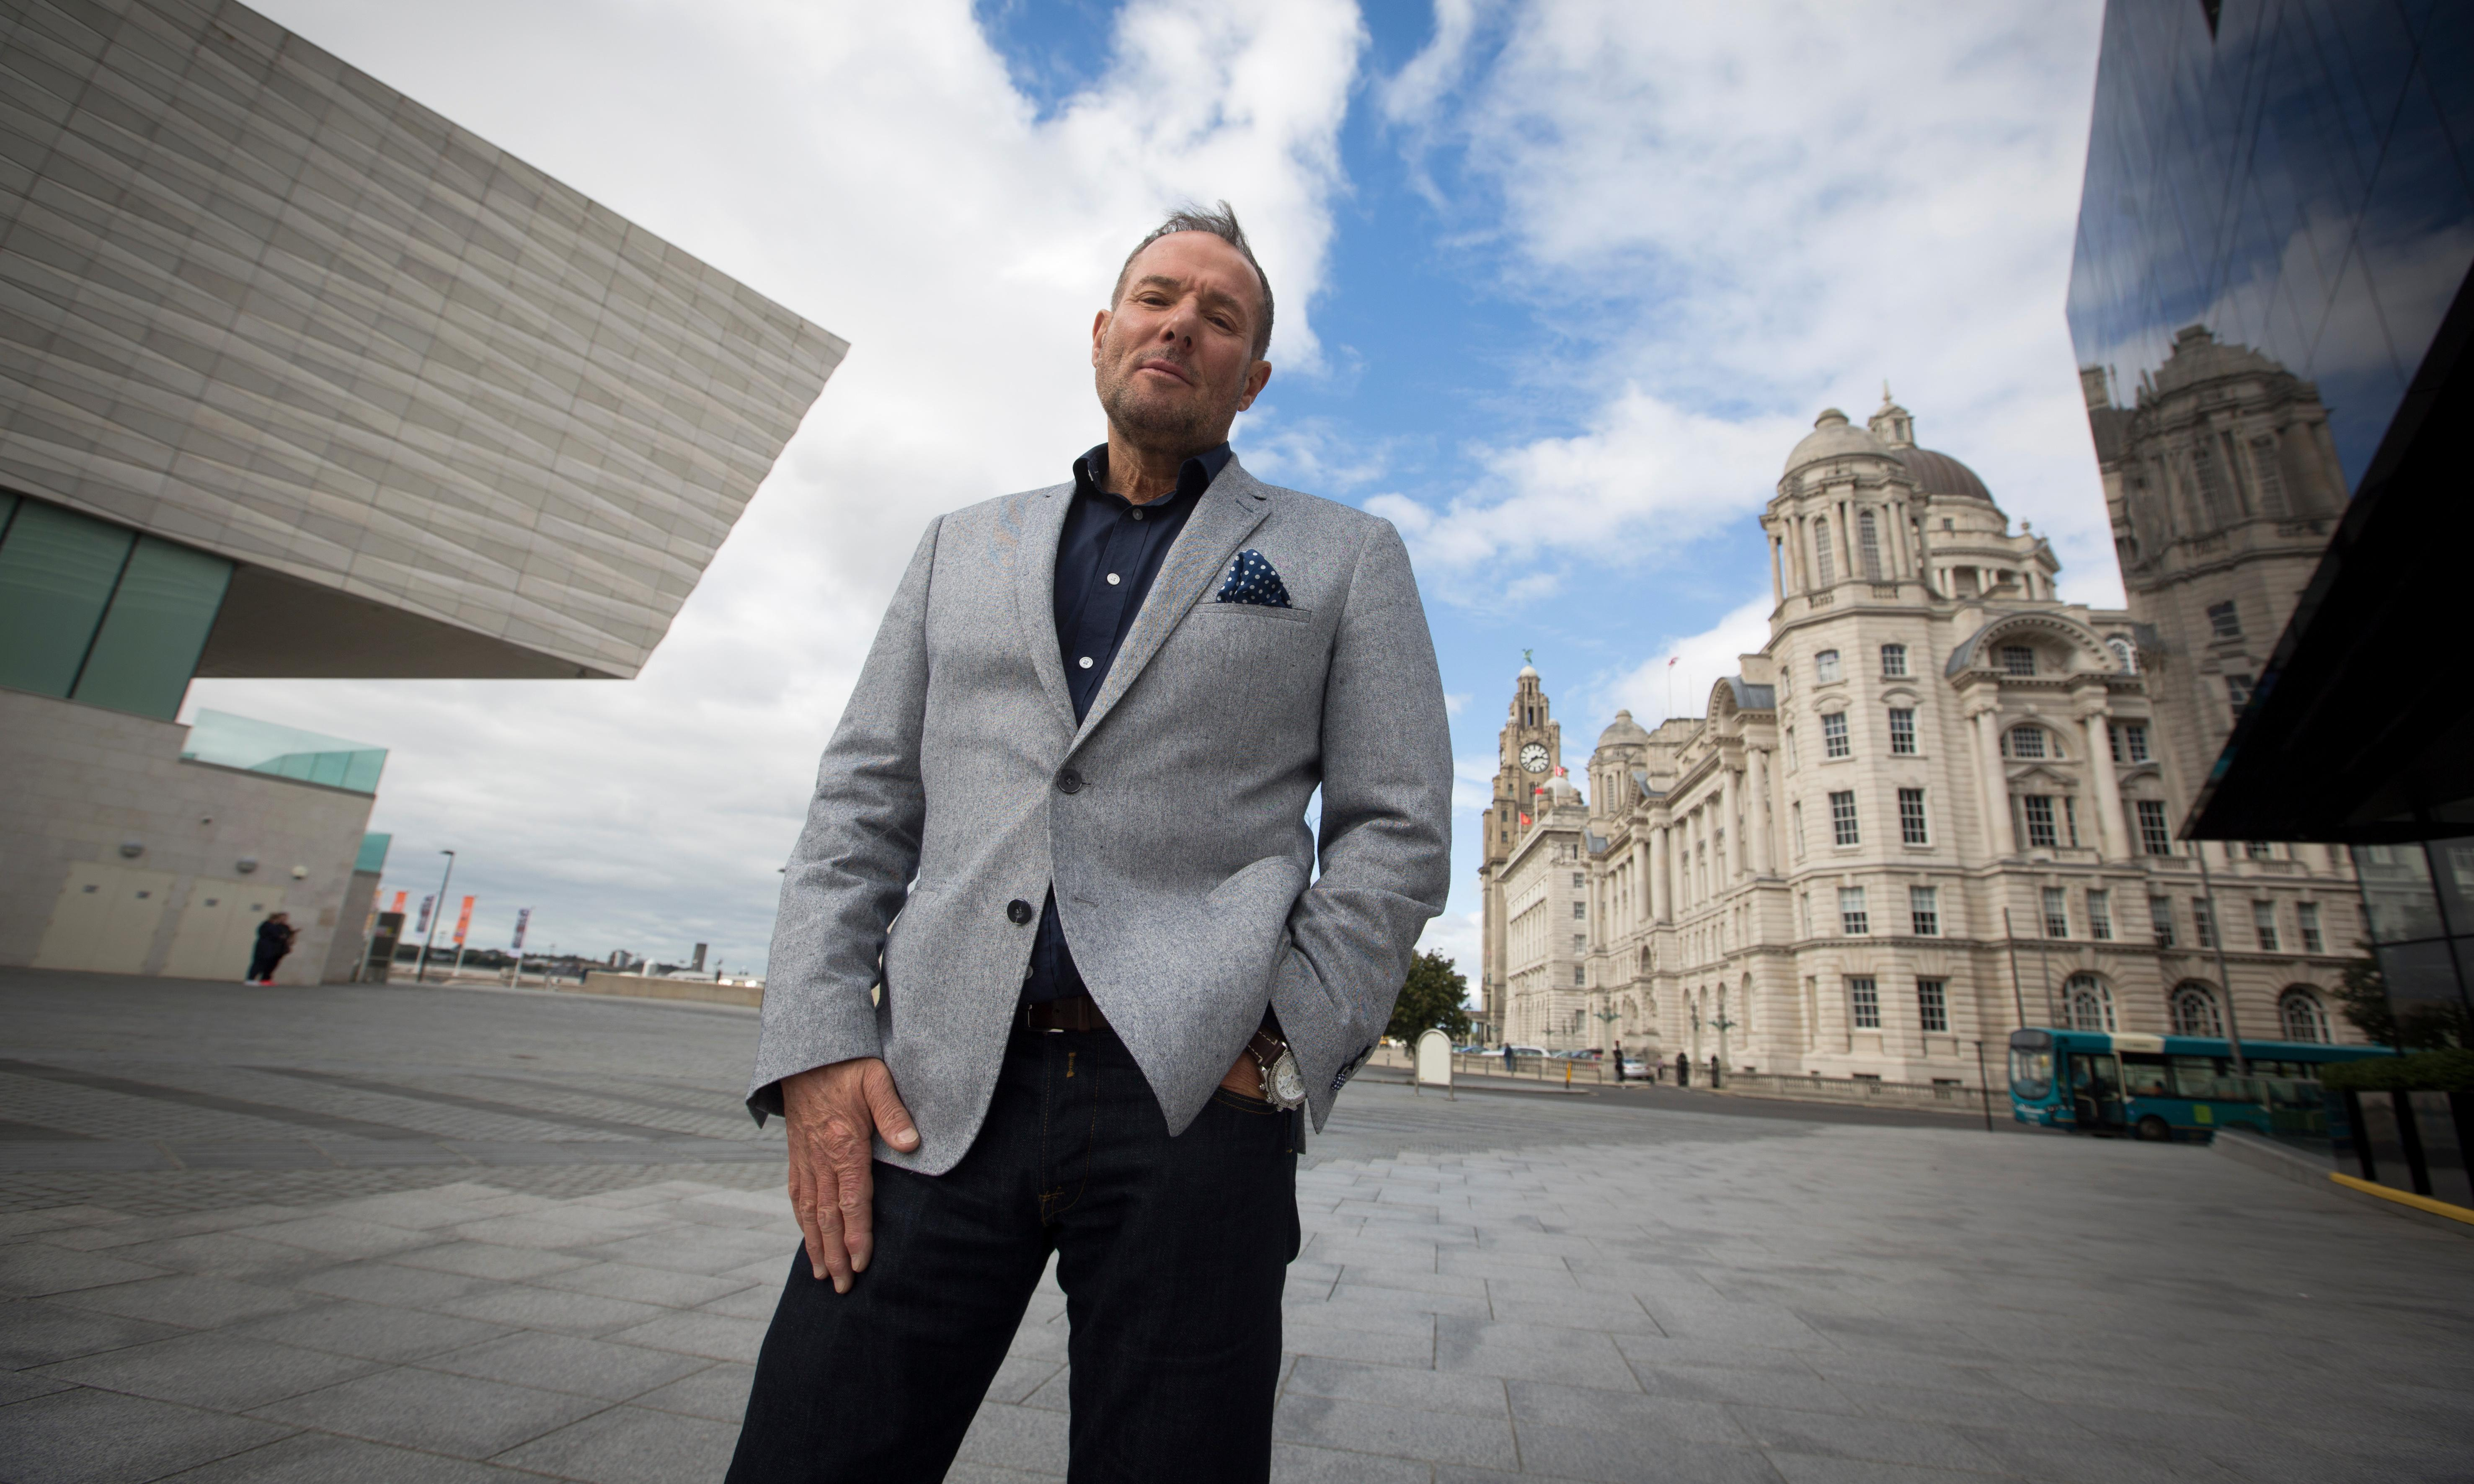 The return of King Rat Derek Hatton marks a new low for Labour